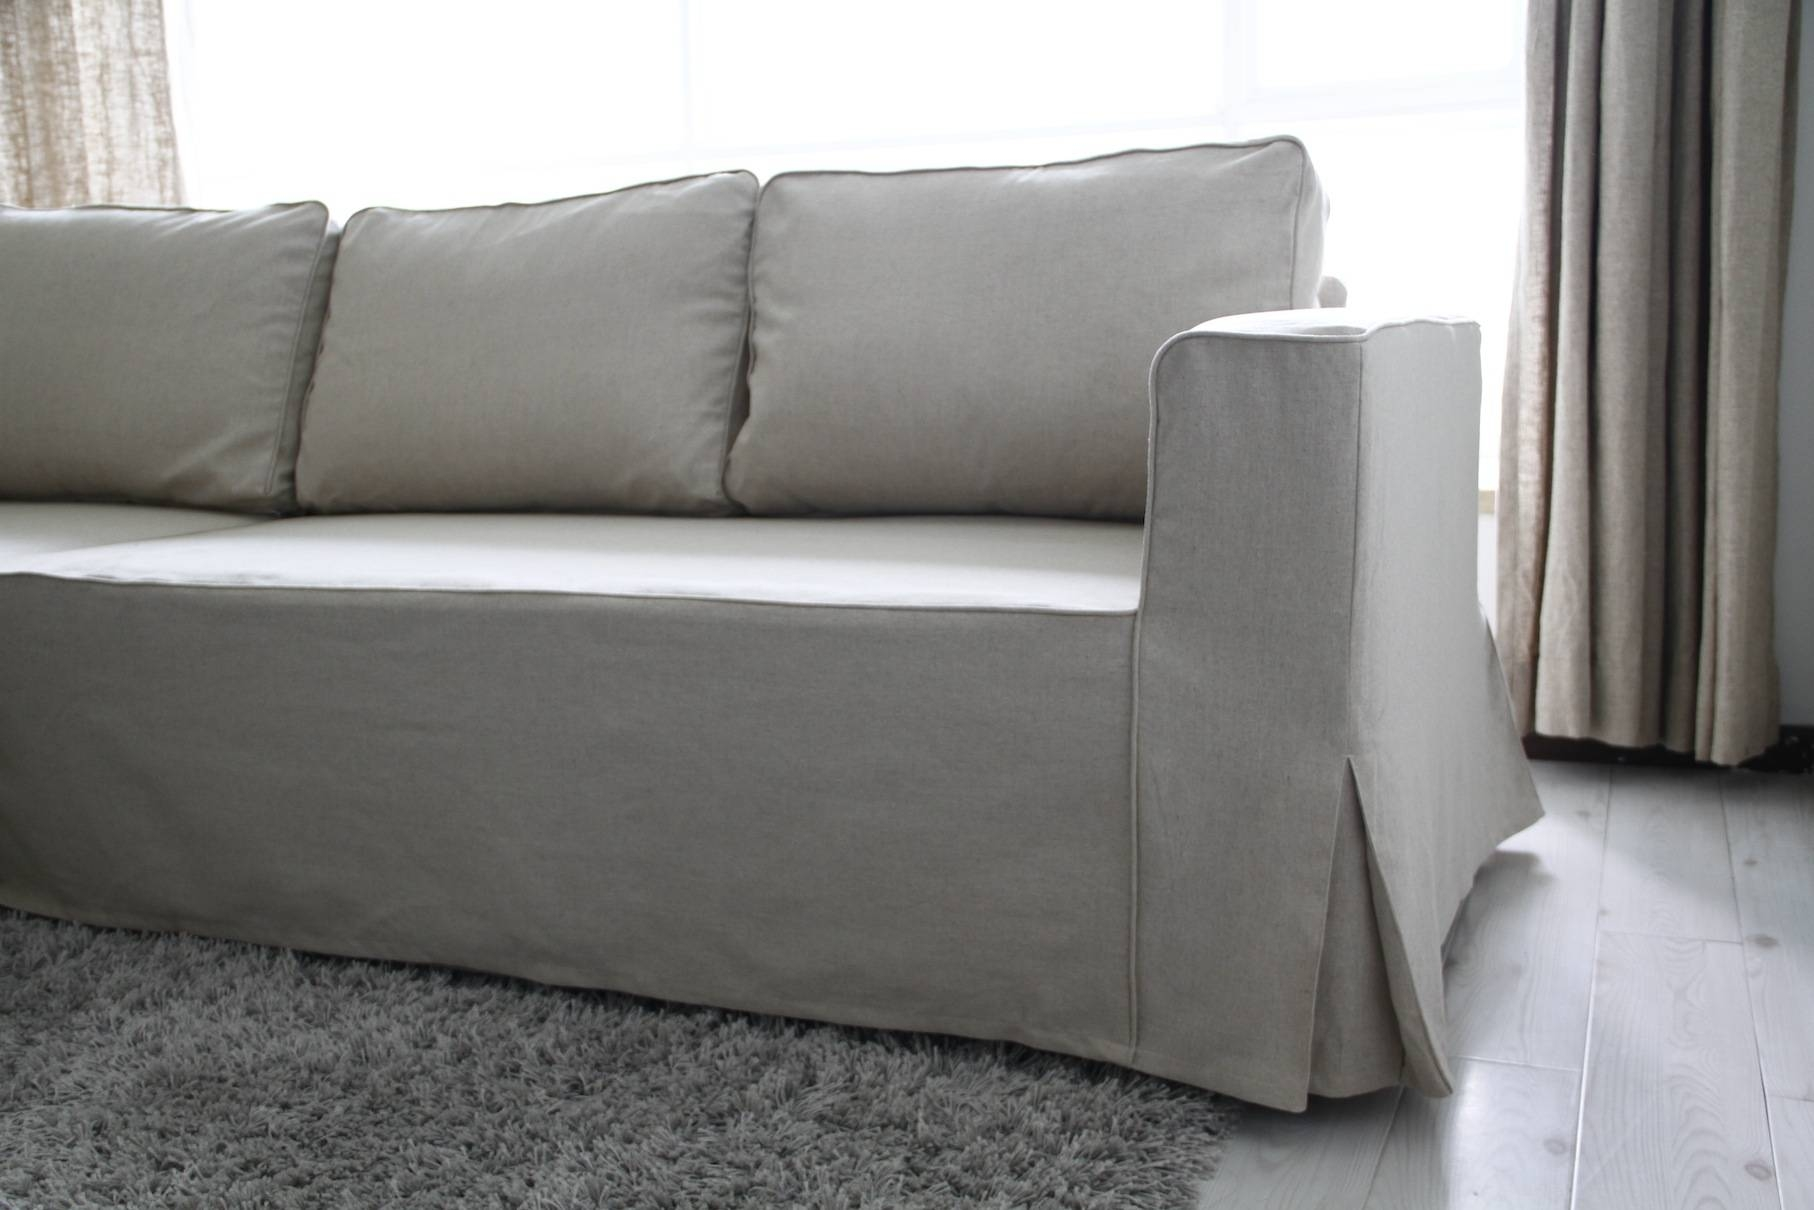 30 Ideas of Sofa Armchair Covers